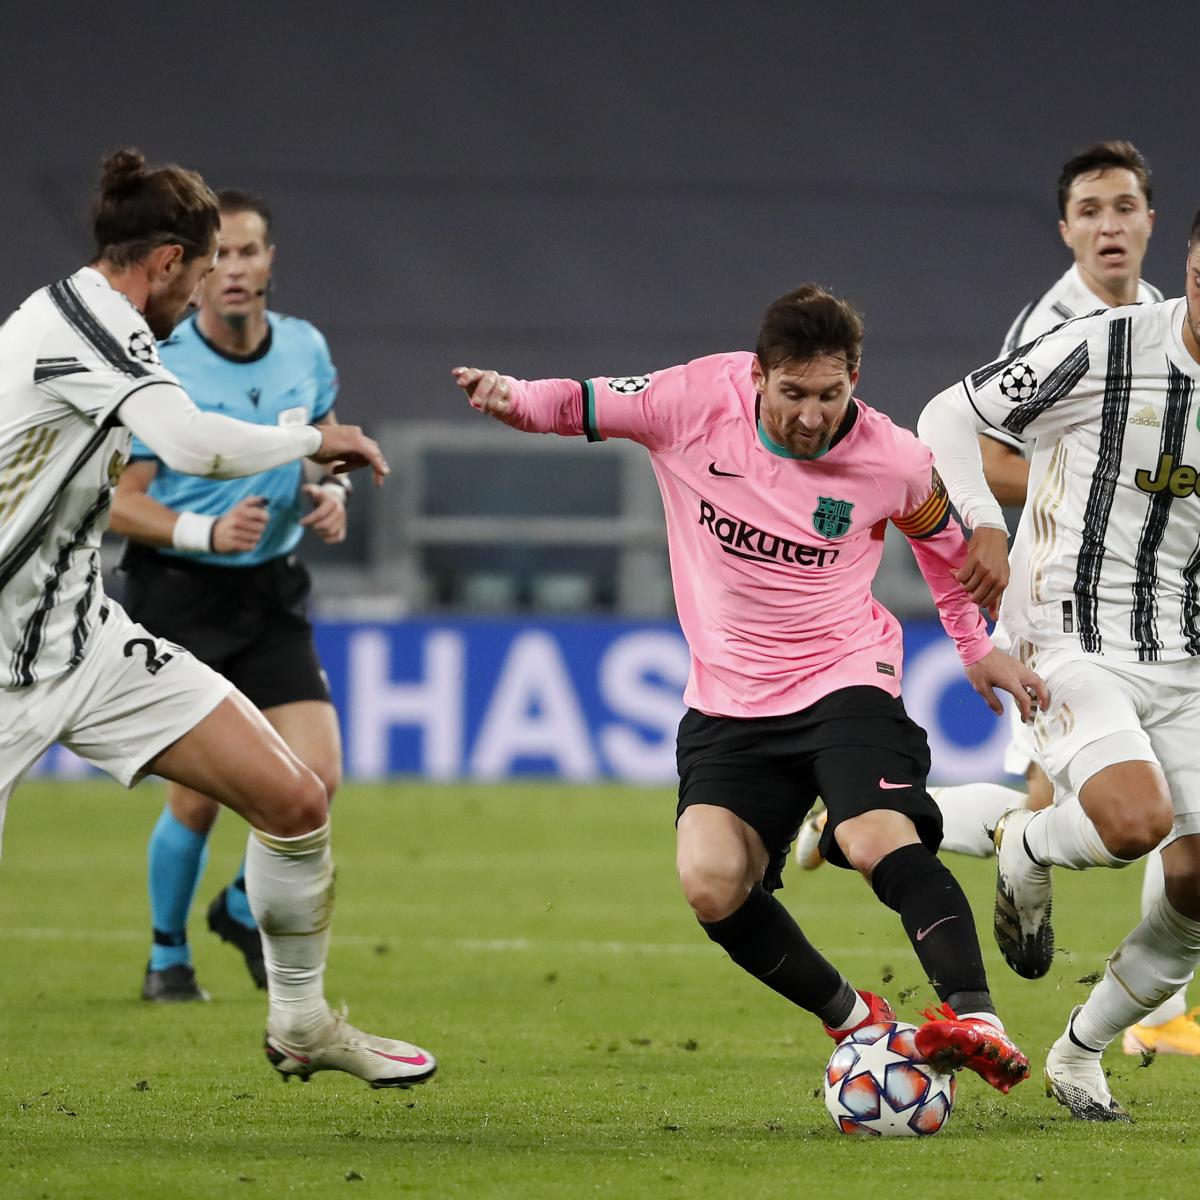 lionel messi barcelona beat juventus in ucl with cristiano ronaldo sidelined bleacher report latest news videos and highlights lionel messi barcelona beat juventus